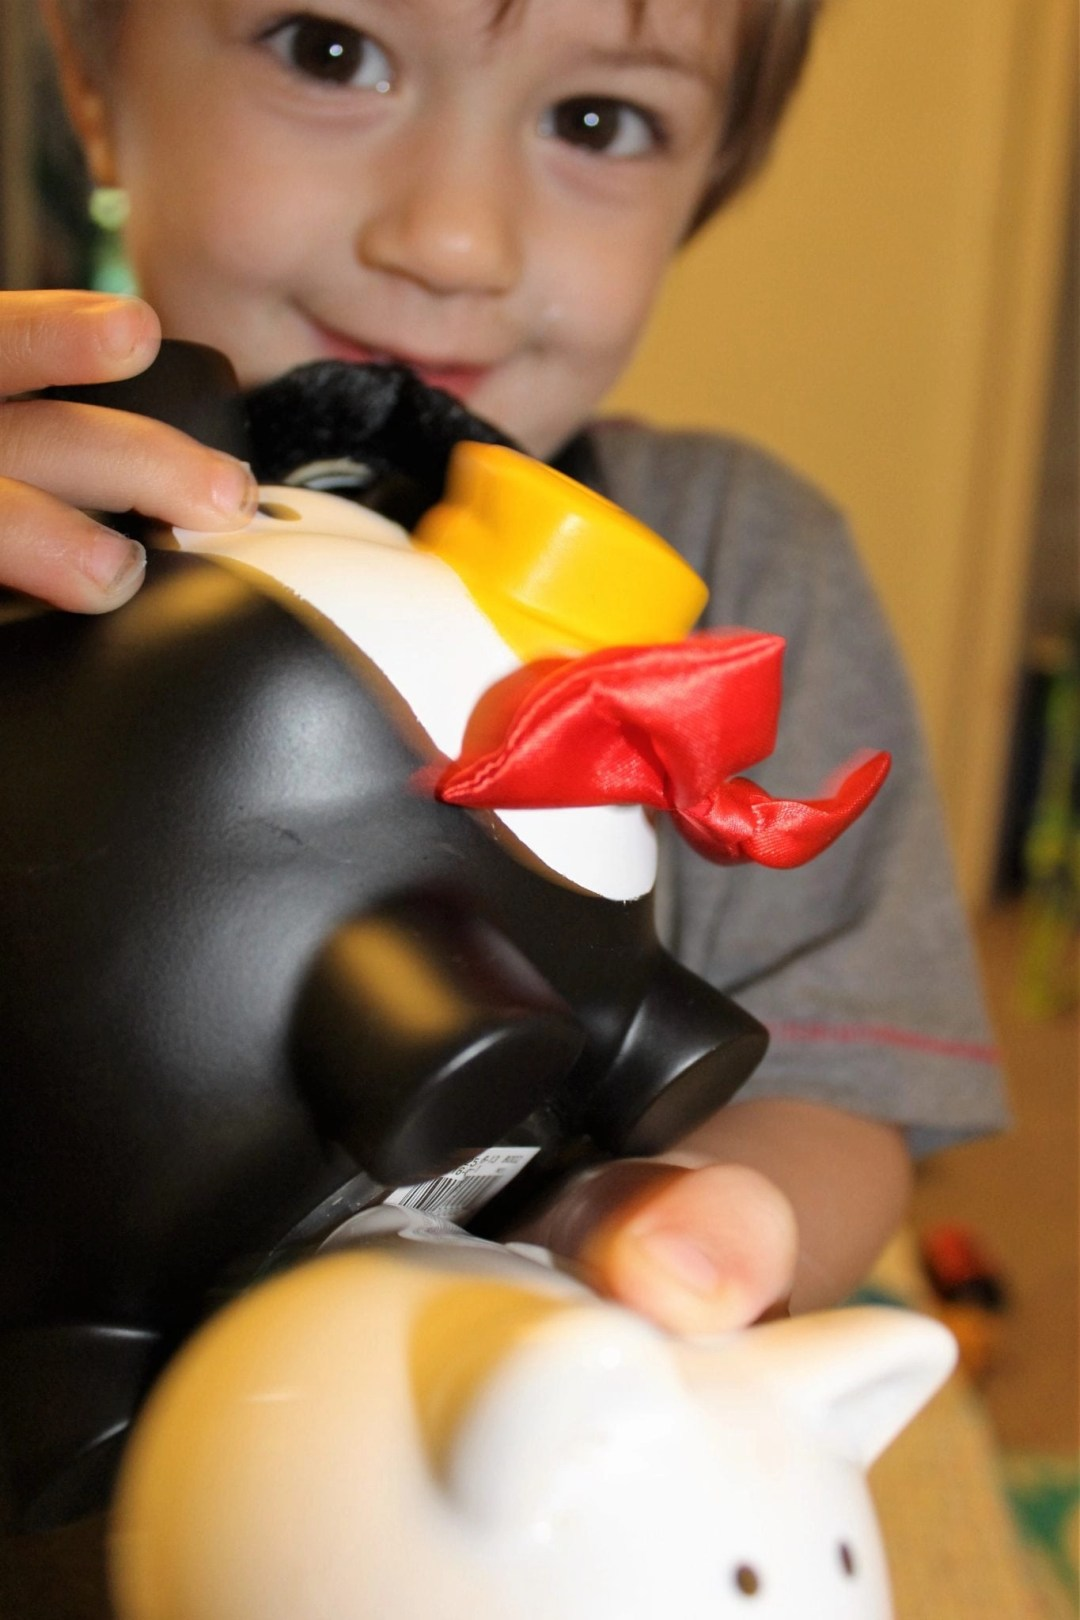 blonde toddler holding black and white piggy bank